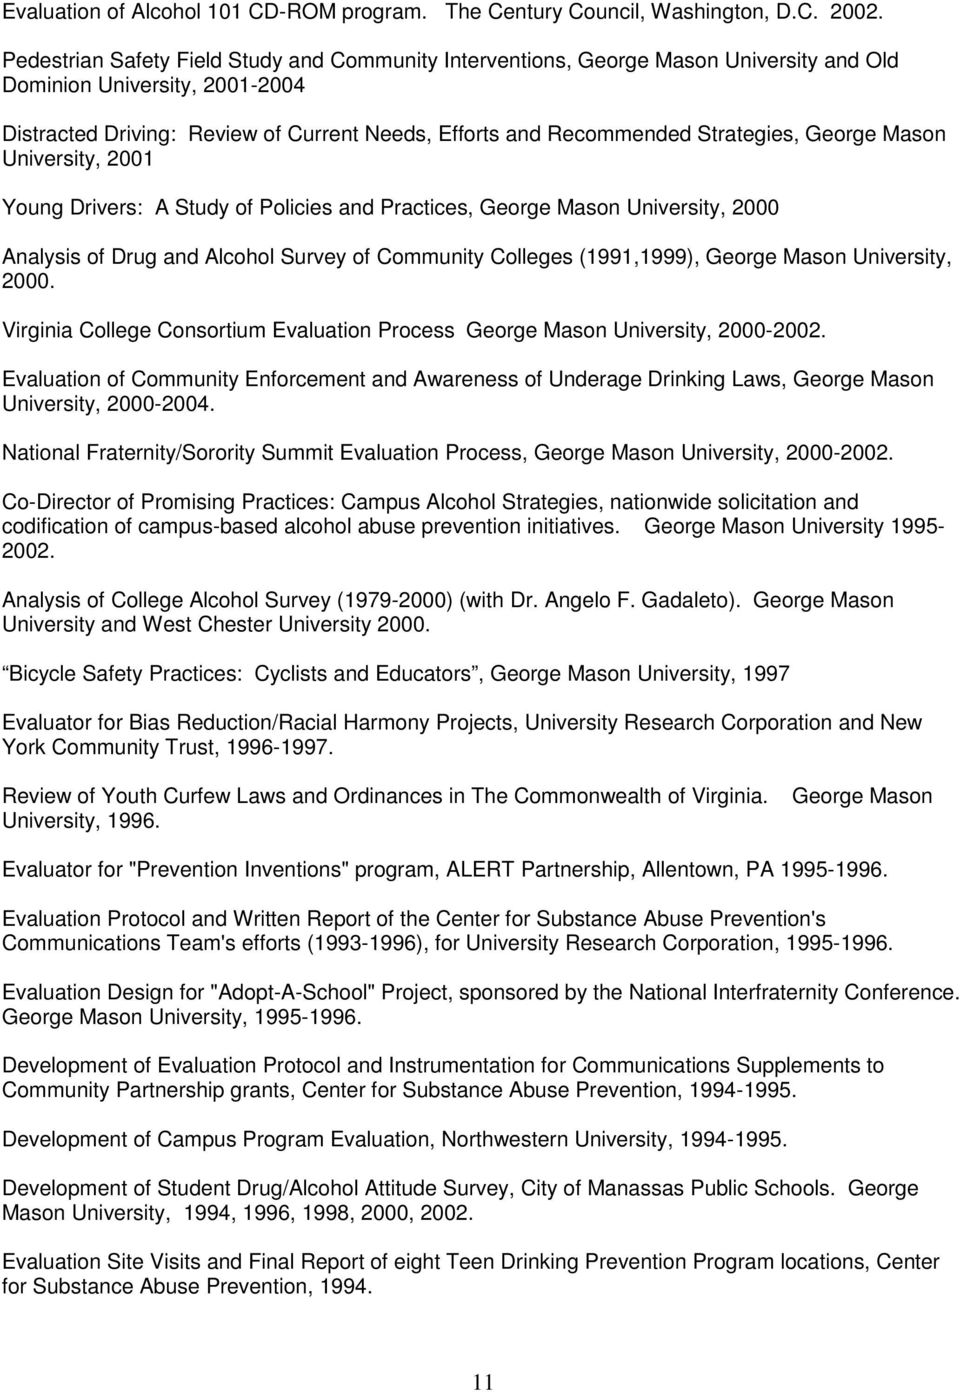 Strategies, George Mason University, 2001 Young Drivers: A Study of Policies and Practices, George Mason University, 2000 Analysis of Drug and Alcohol Survey of Community Colleges (1991,1999), George